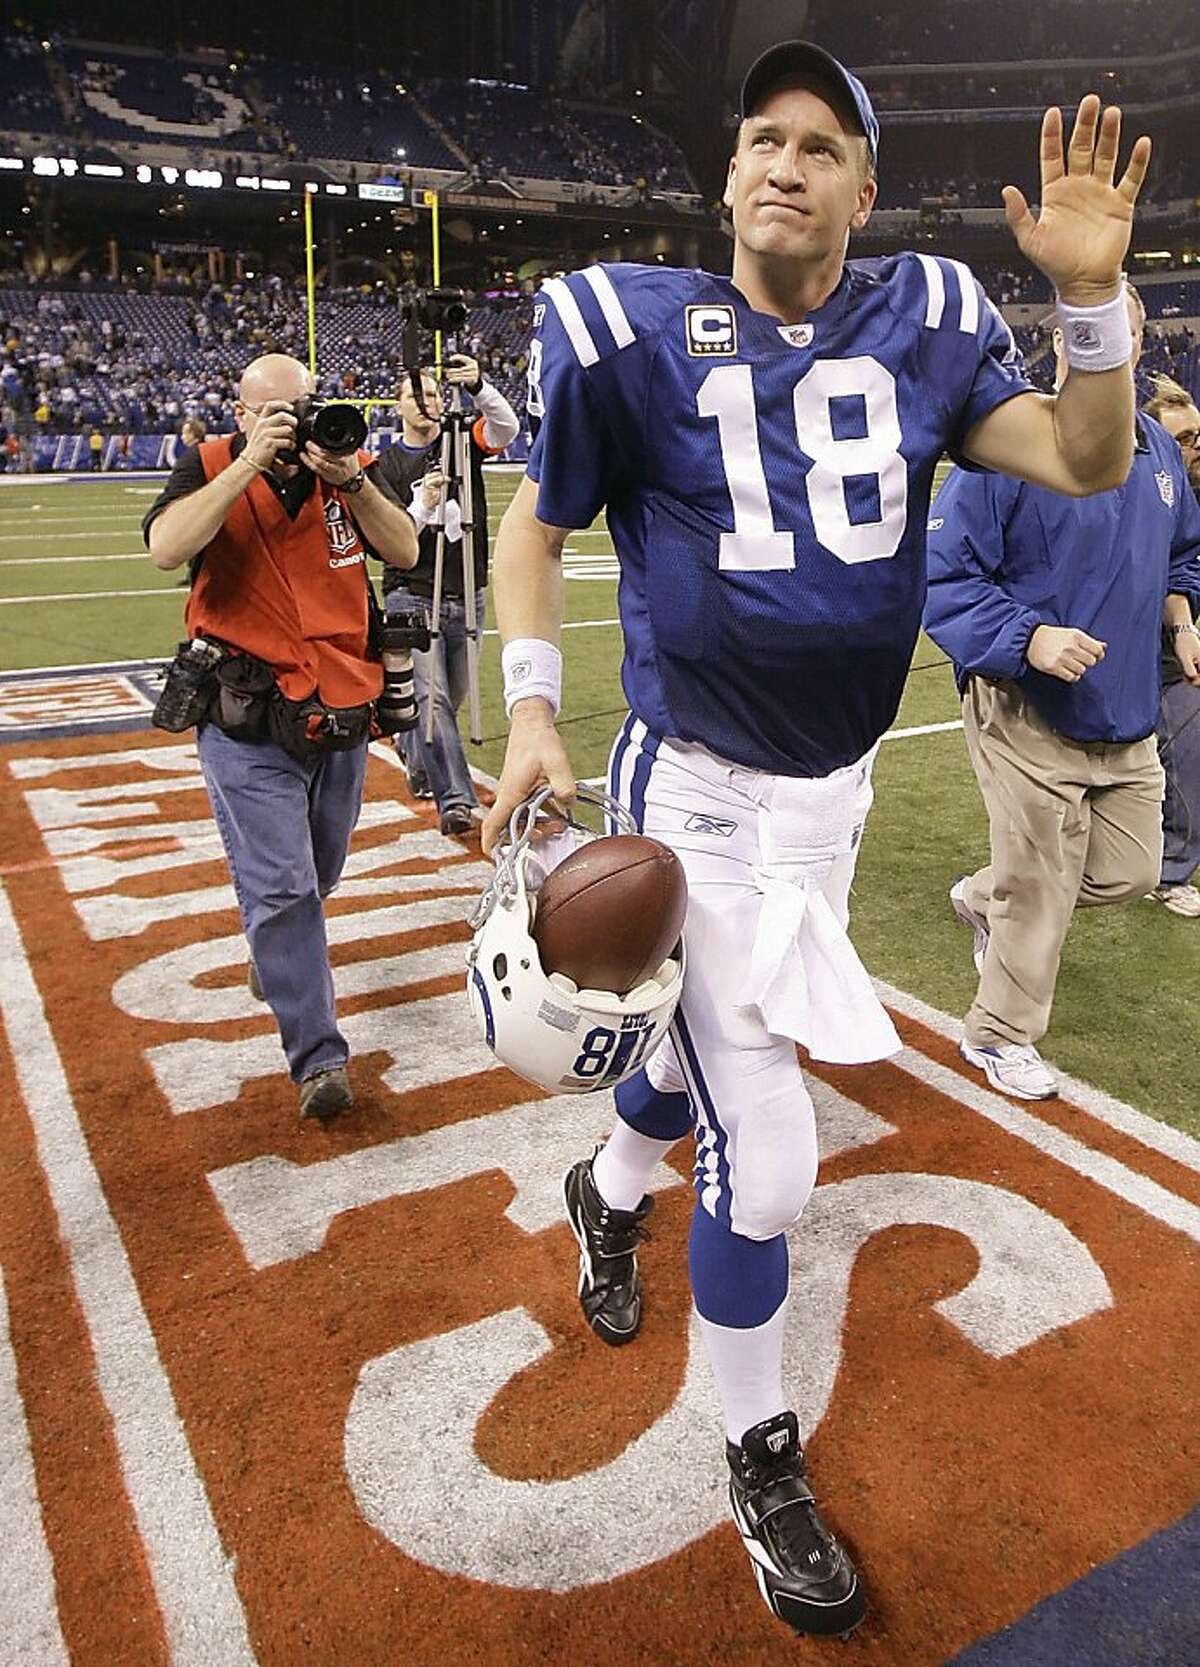 FILE - In this Jan. 16, 2010, file photo, Indianapolis Colts quarterback Peyton Manning waves as he walks off the field after the NFL divisional football playoff game against the Baltimore Ravens in Indianapolis. The Peyton Manning era in Indianapolis is expected to end, according to a report. Citing anonymous sources, ESPN reported Tuesday, March 7, 2012, that the Colts plan to hold a news conference Wednesday to announce the long-expected decision. Manning is expected to attend. (AP Photo/Darron Cummings, File)